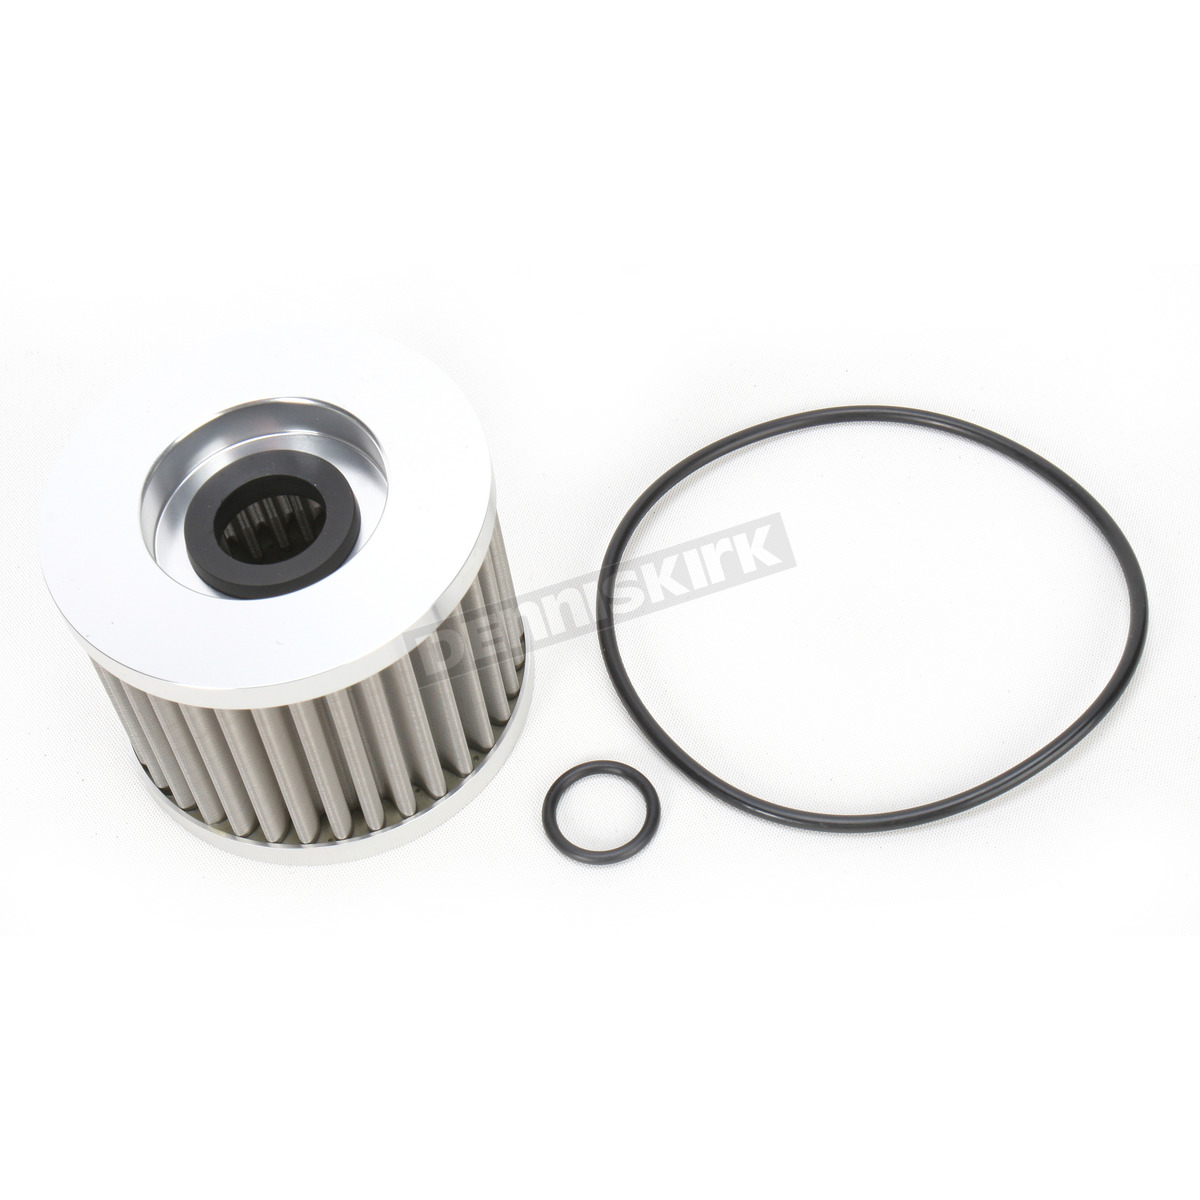 flo oil filters stainless steel reusable oil filter